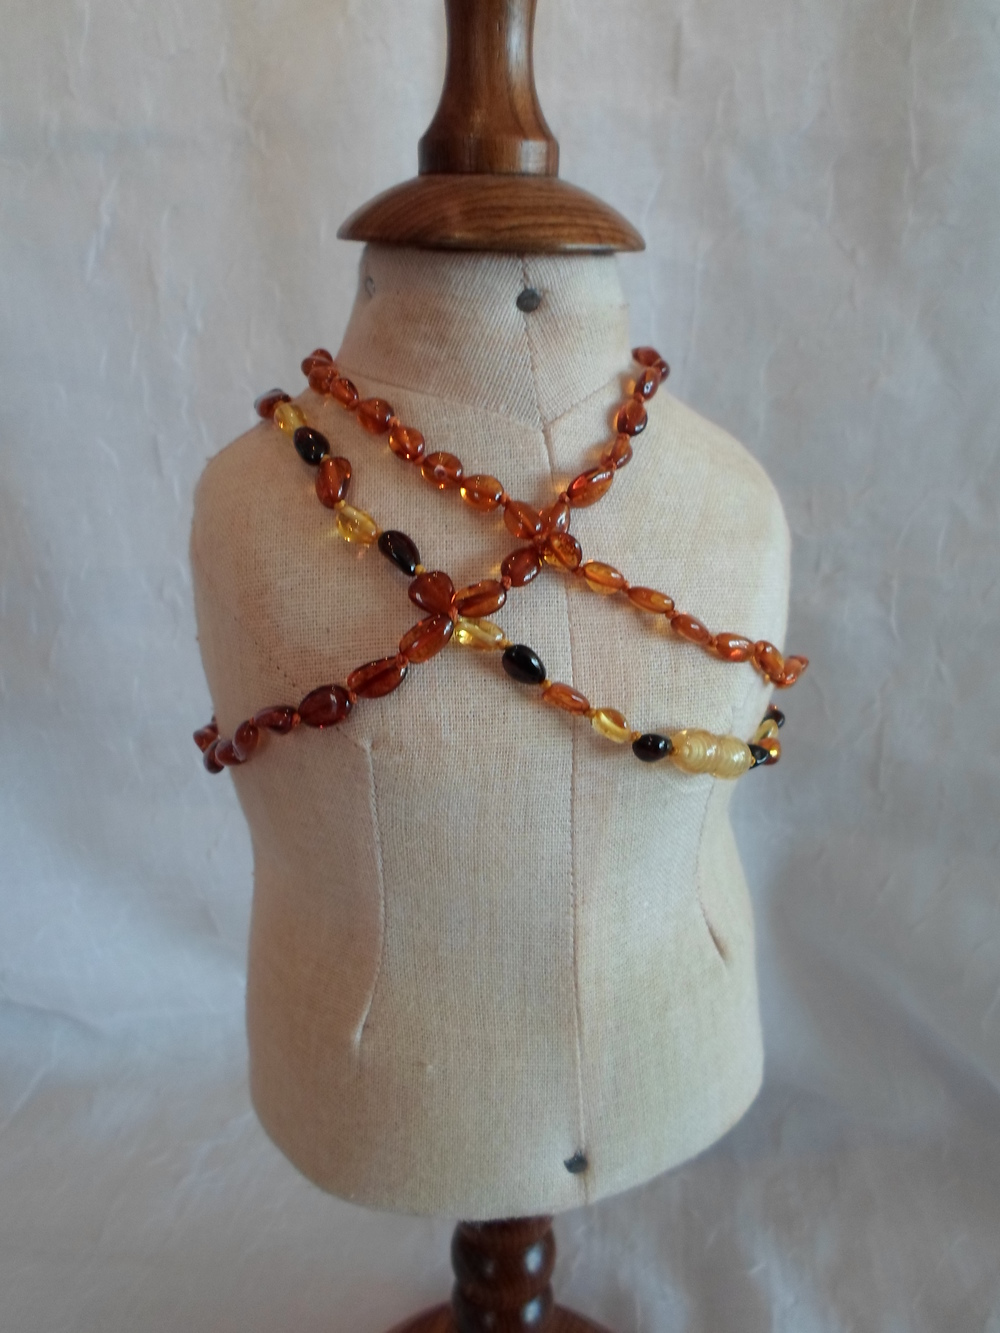 Genuine Baltic Amber Teething Necklace for Baby    $23.00    Wants 1  purchased